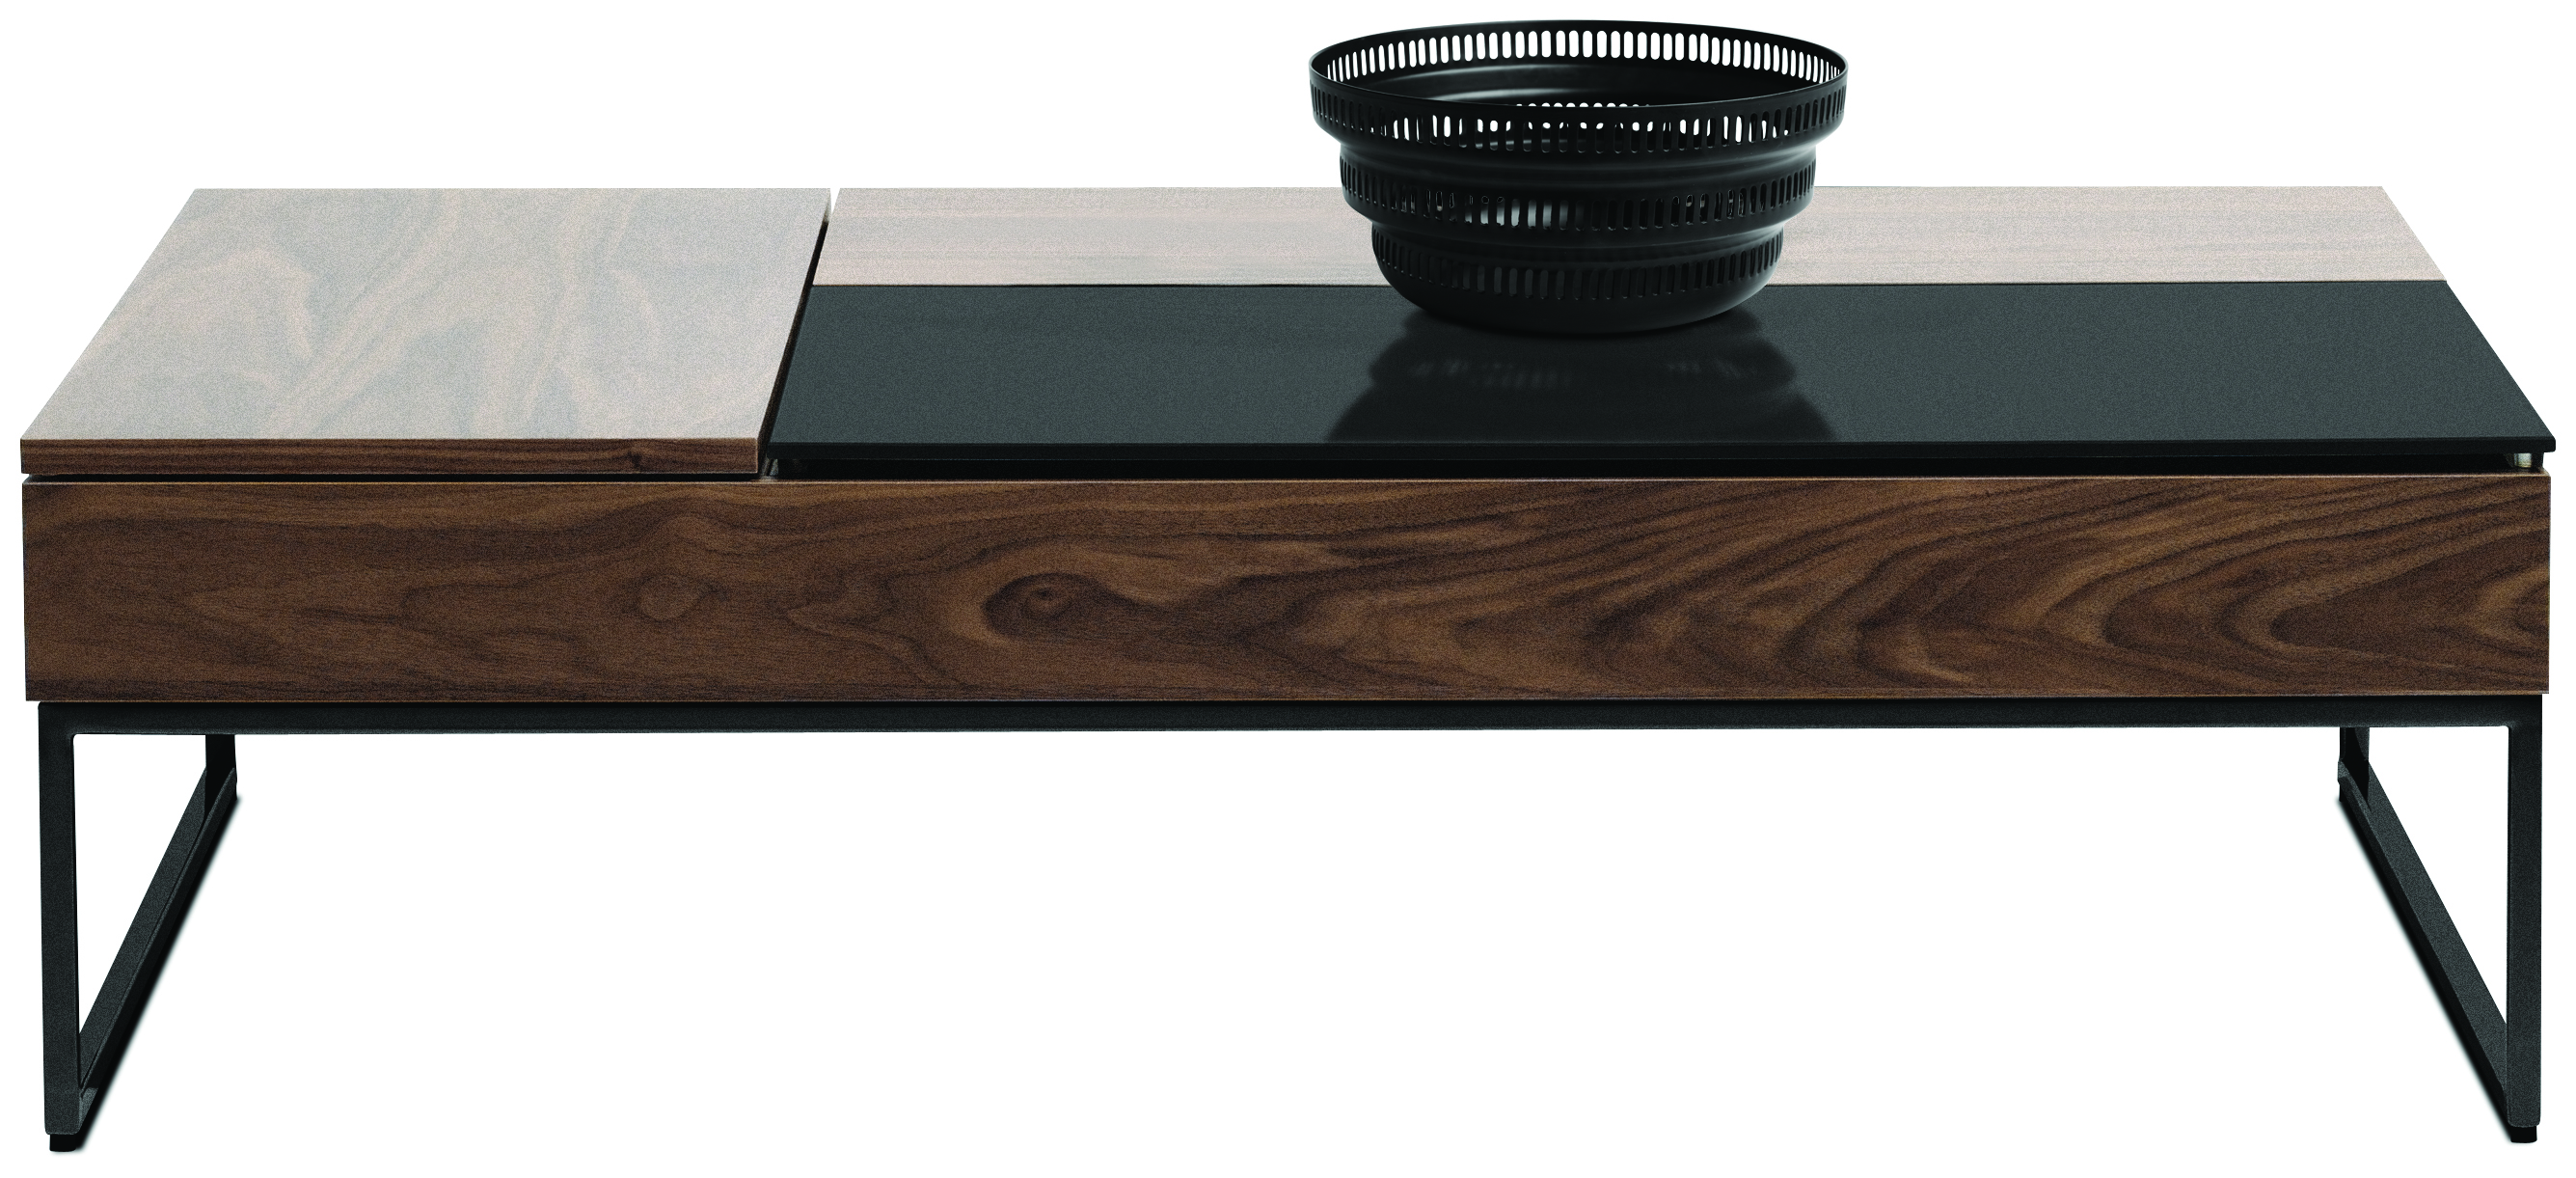 Functional Coffee Table Boconcept Cambridge